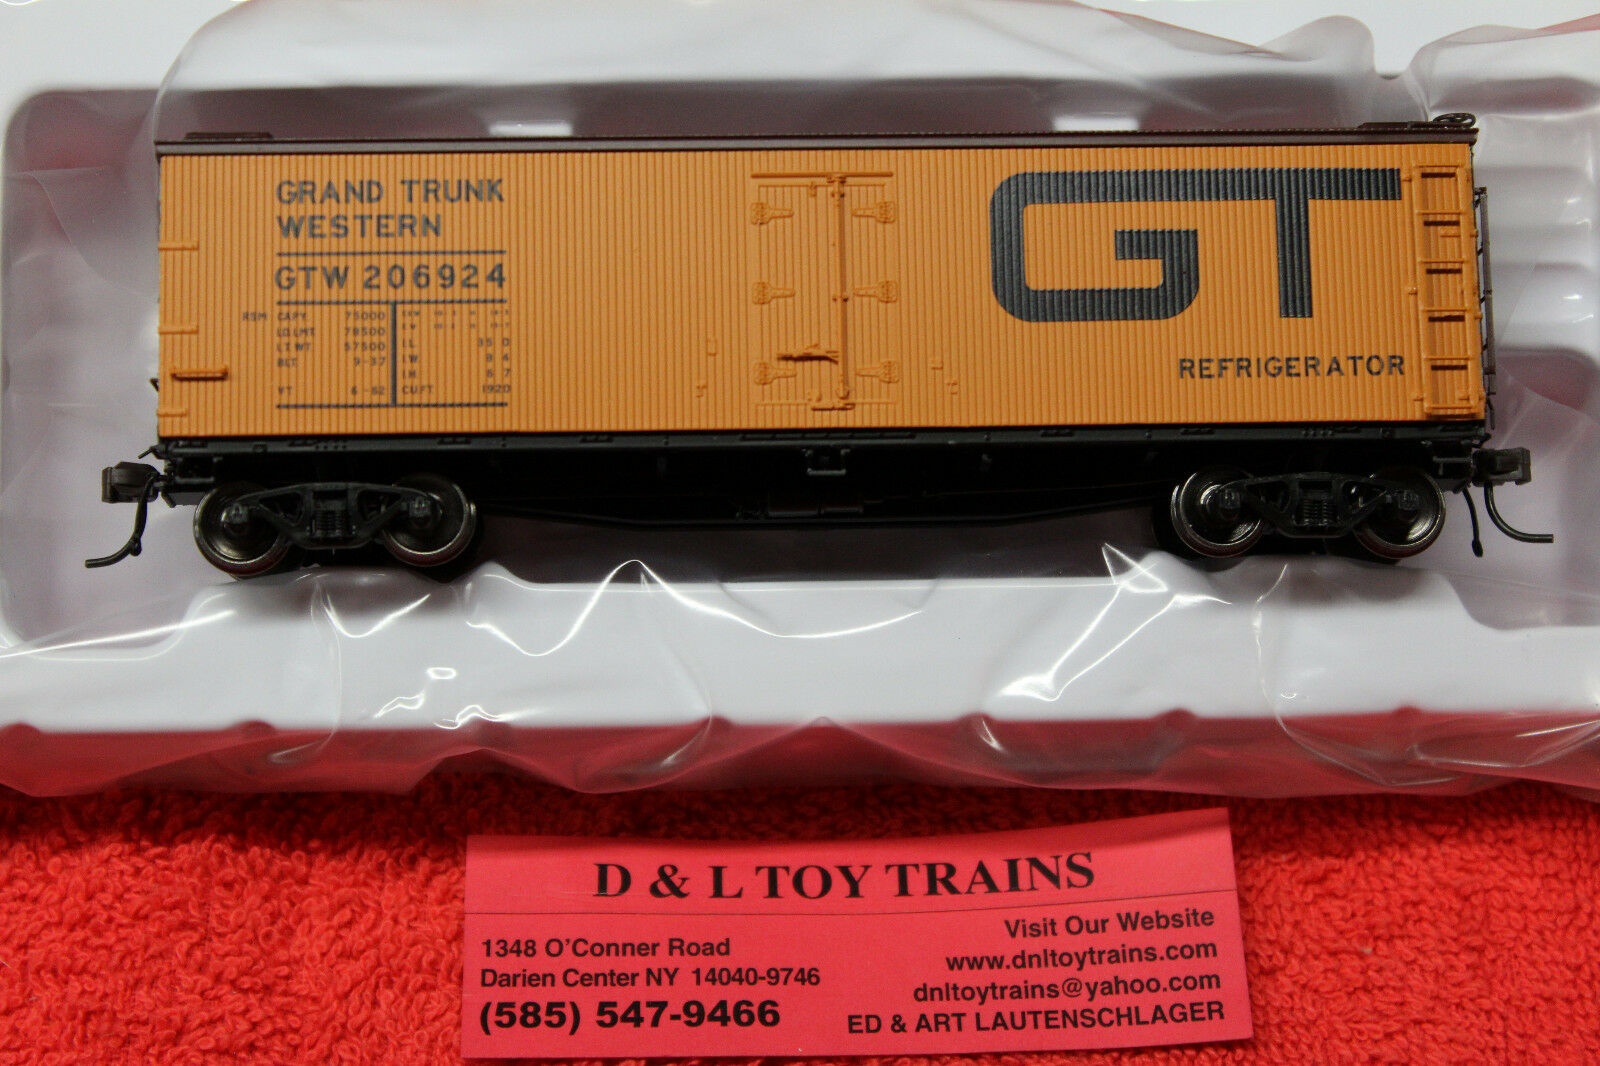 20003807 Grand Trunk Western 40' Wood Side Reefer Car Brand New In Box